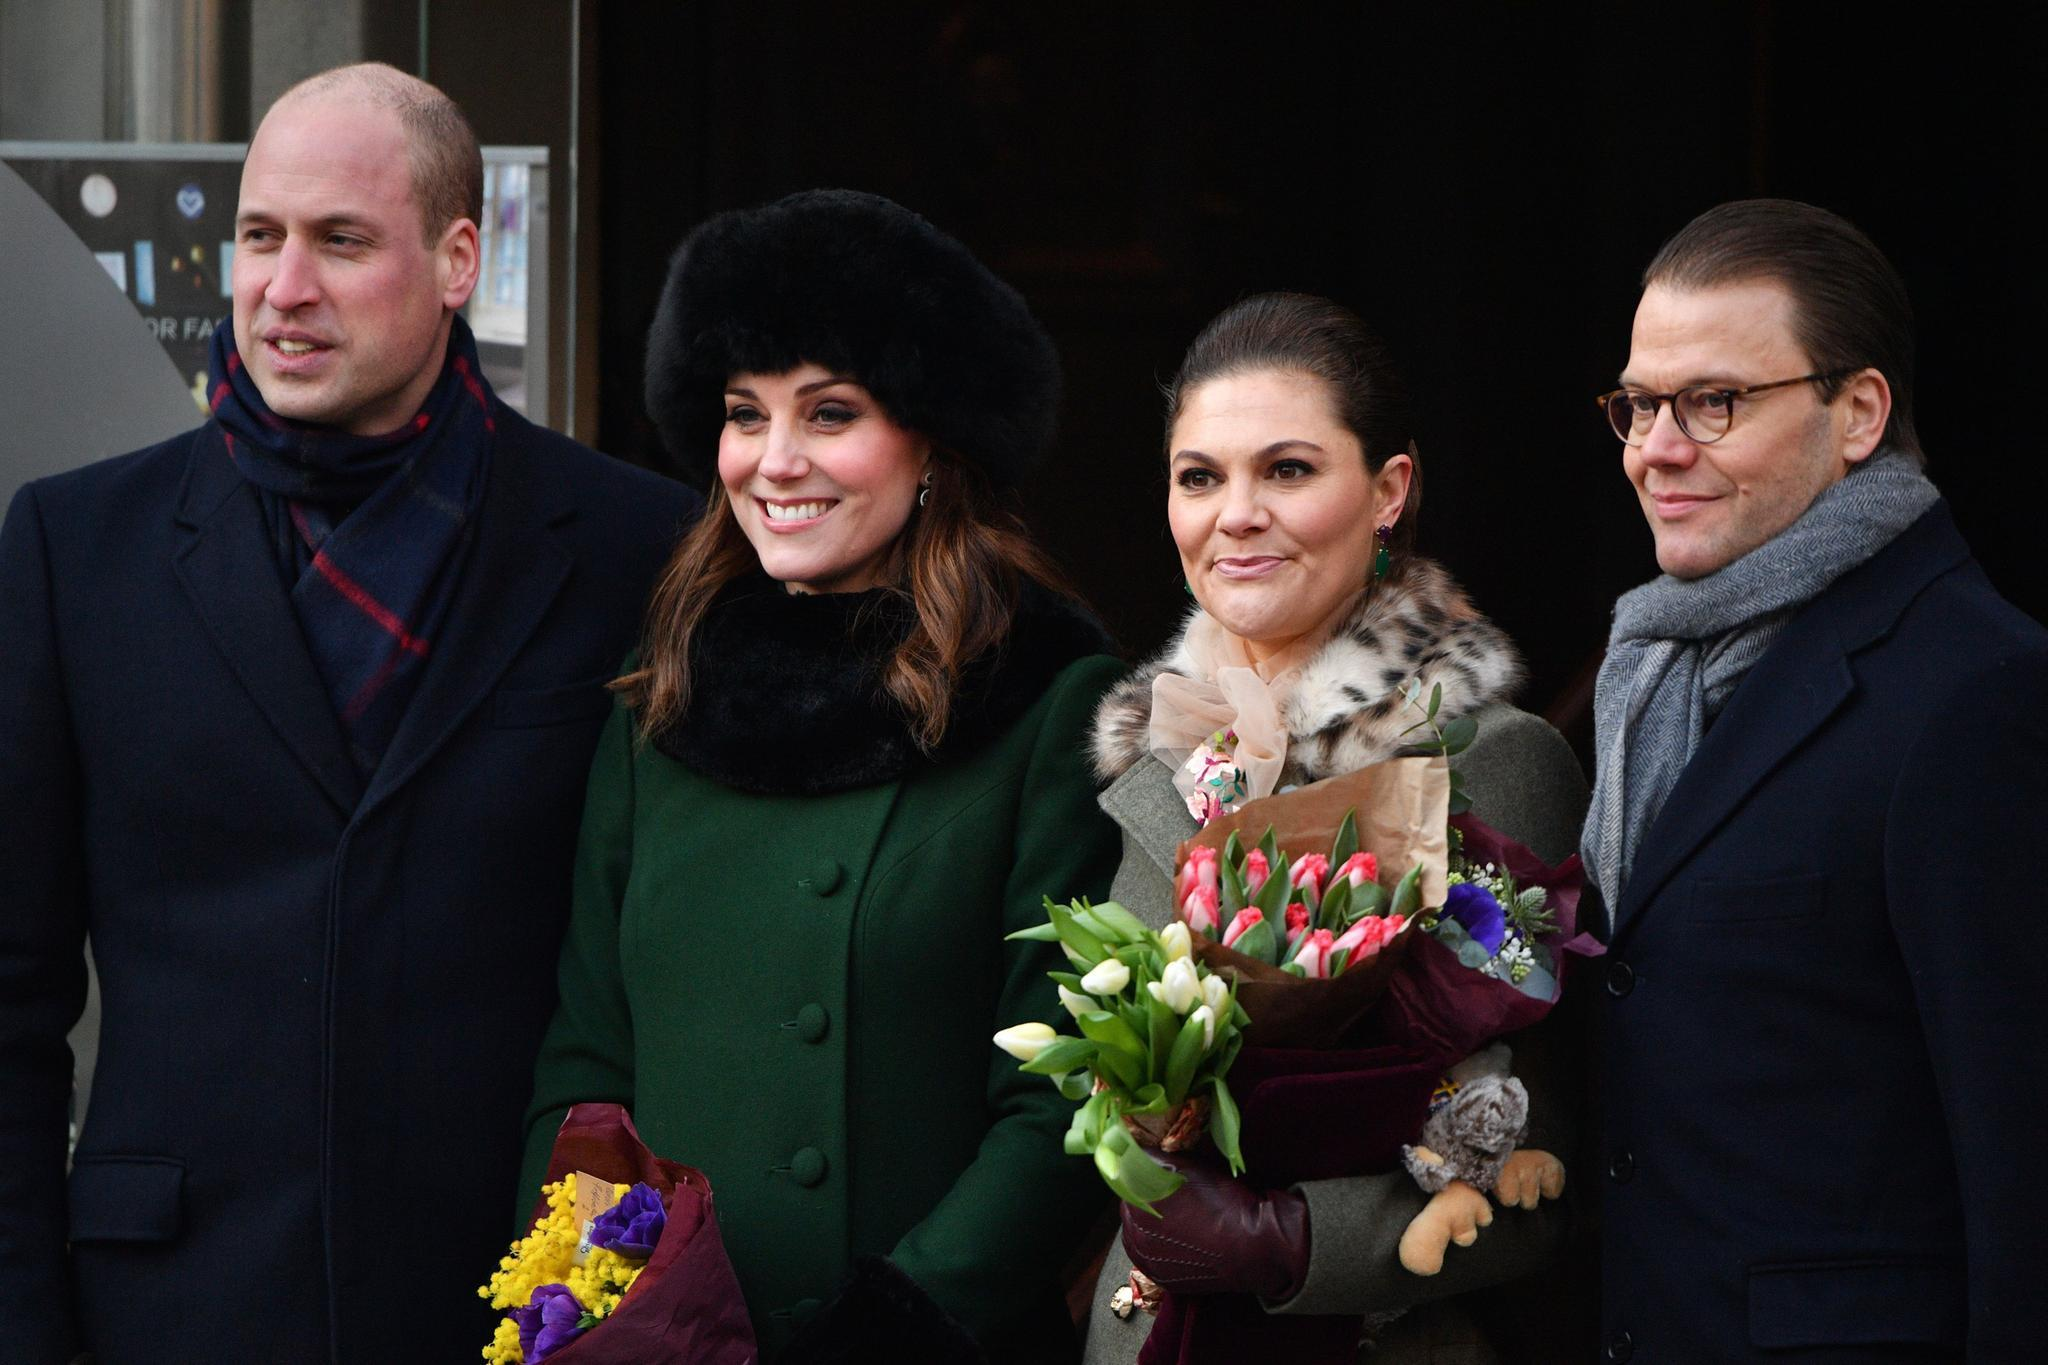 Prinz William, Herzogin Catherine, Prinzessin Victoria, Prinz Daniel